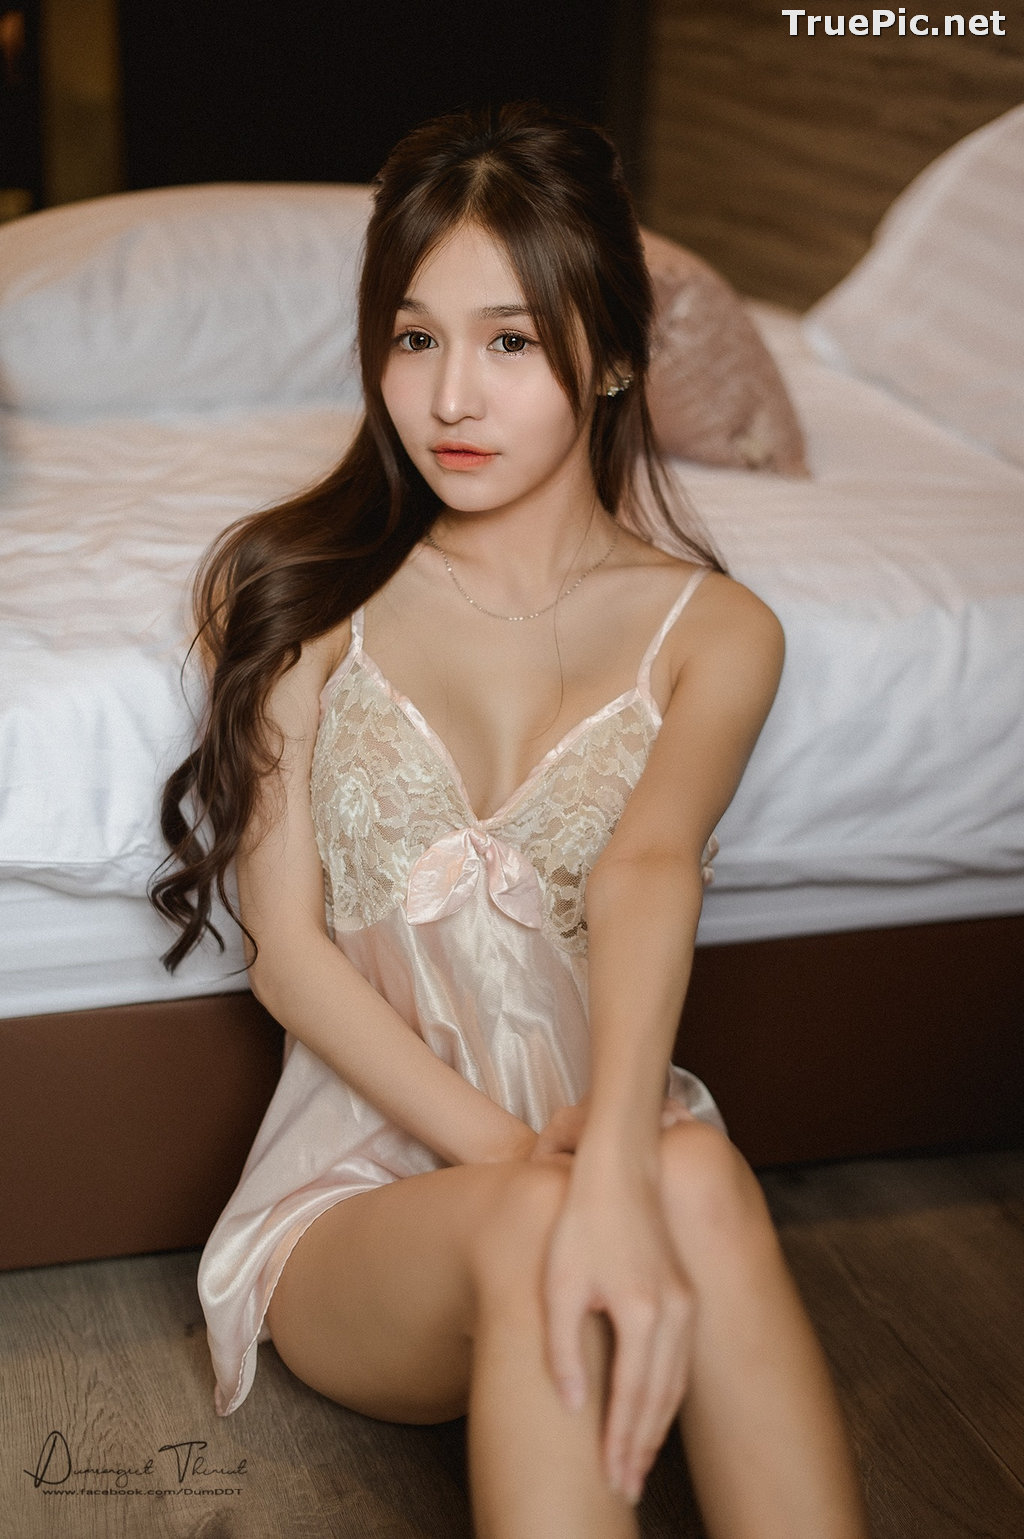 Image Thailand Model - Patcharaporn Chaopitakwong - Cute Girl Pajamas - TruePic.net - Picture-6